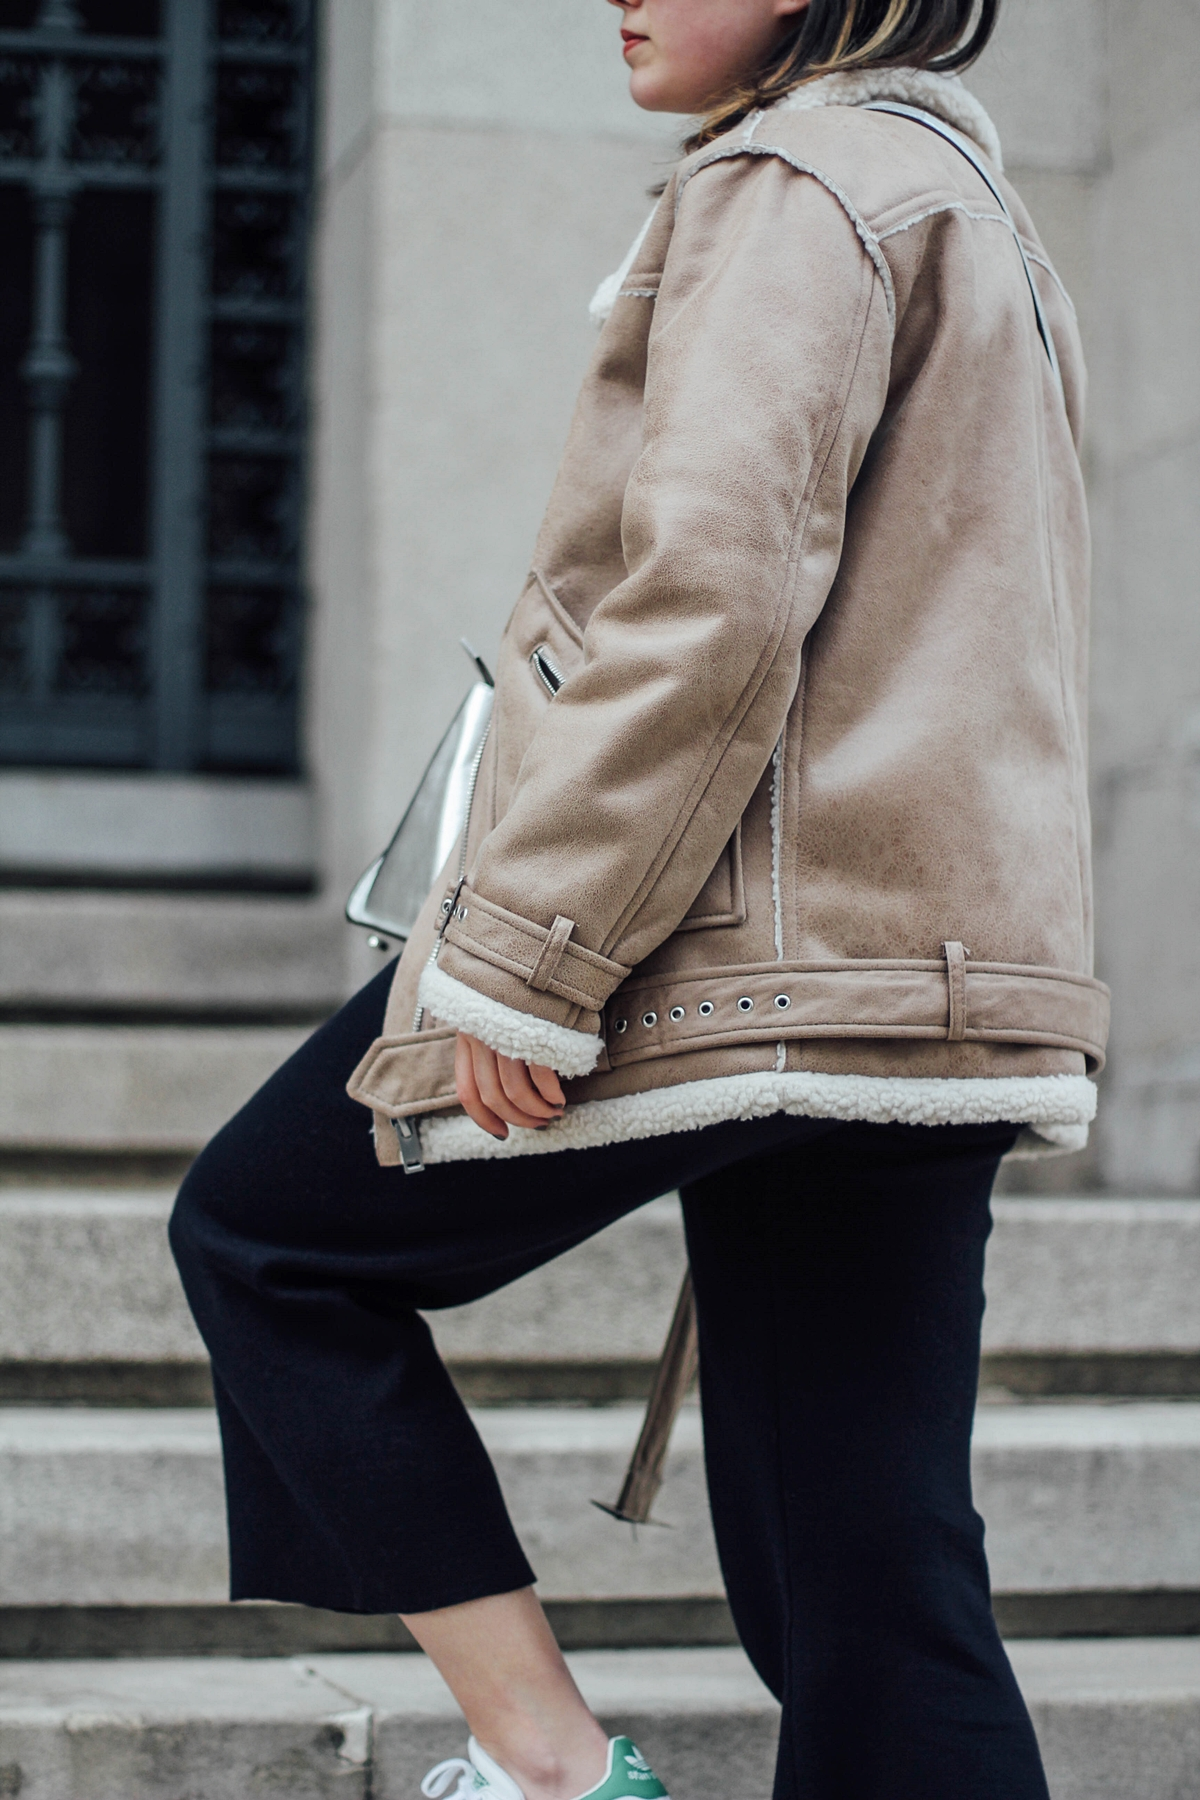 shearling-jacket-streetstyle-navy-suit-zara